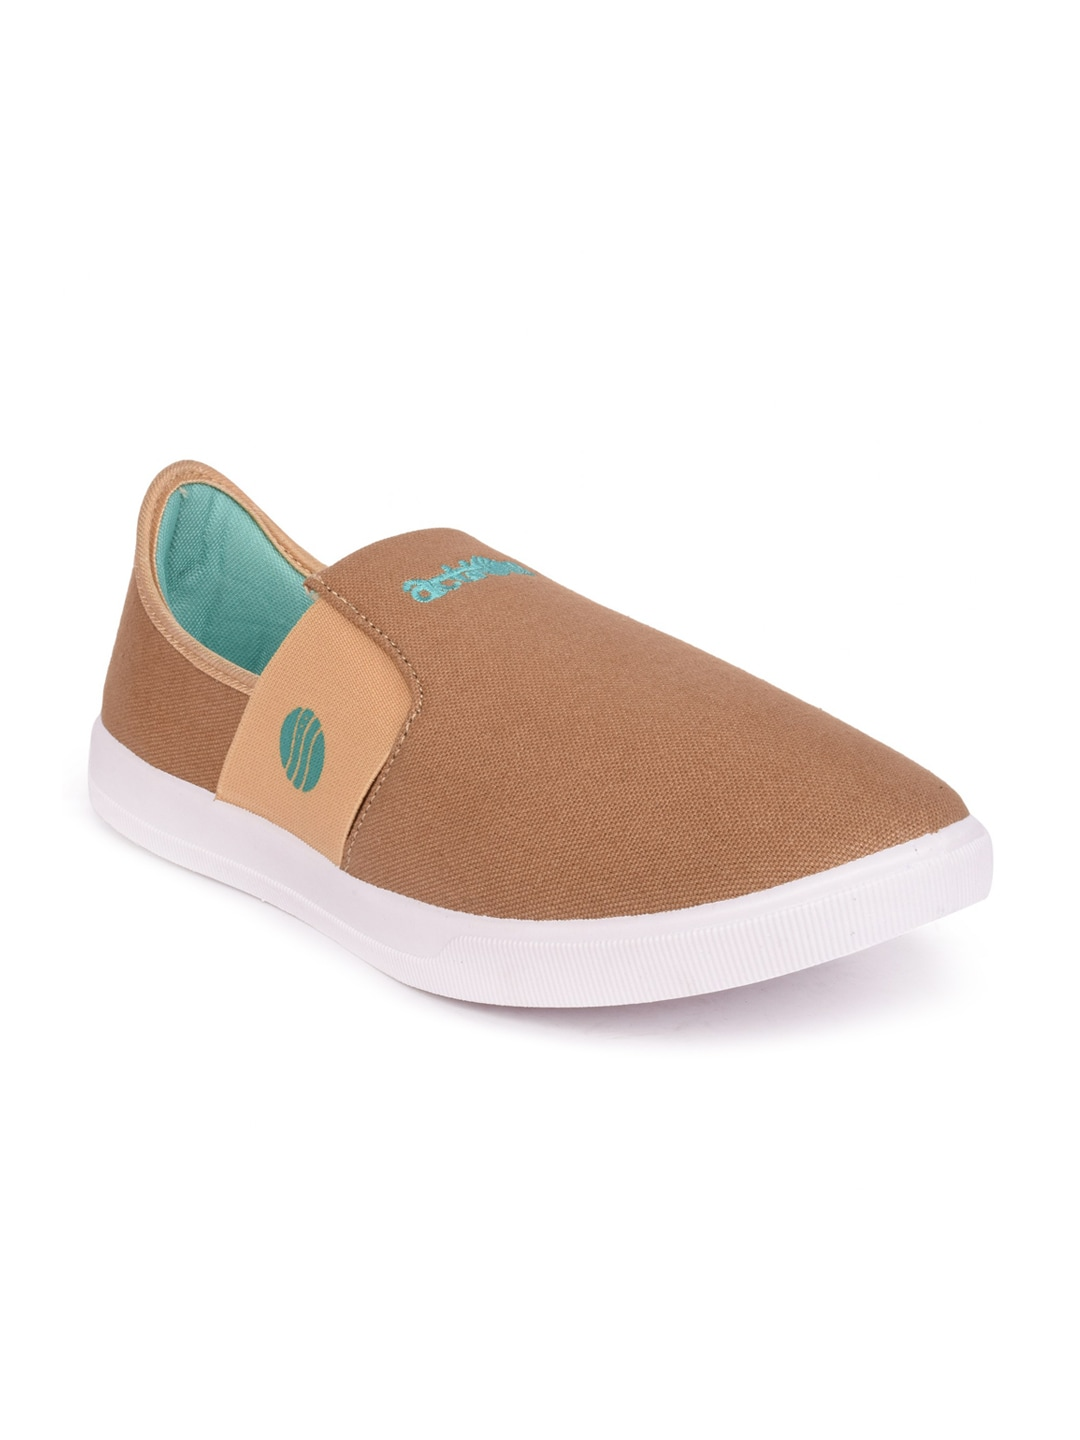 5e9e4677438297 Action Shoe - Buy Action Shoe online in India